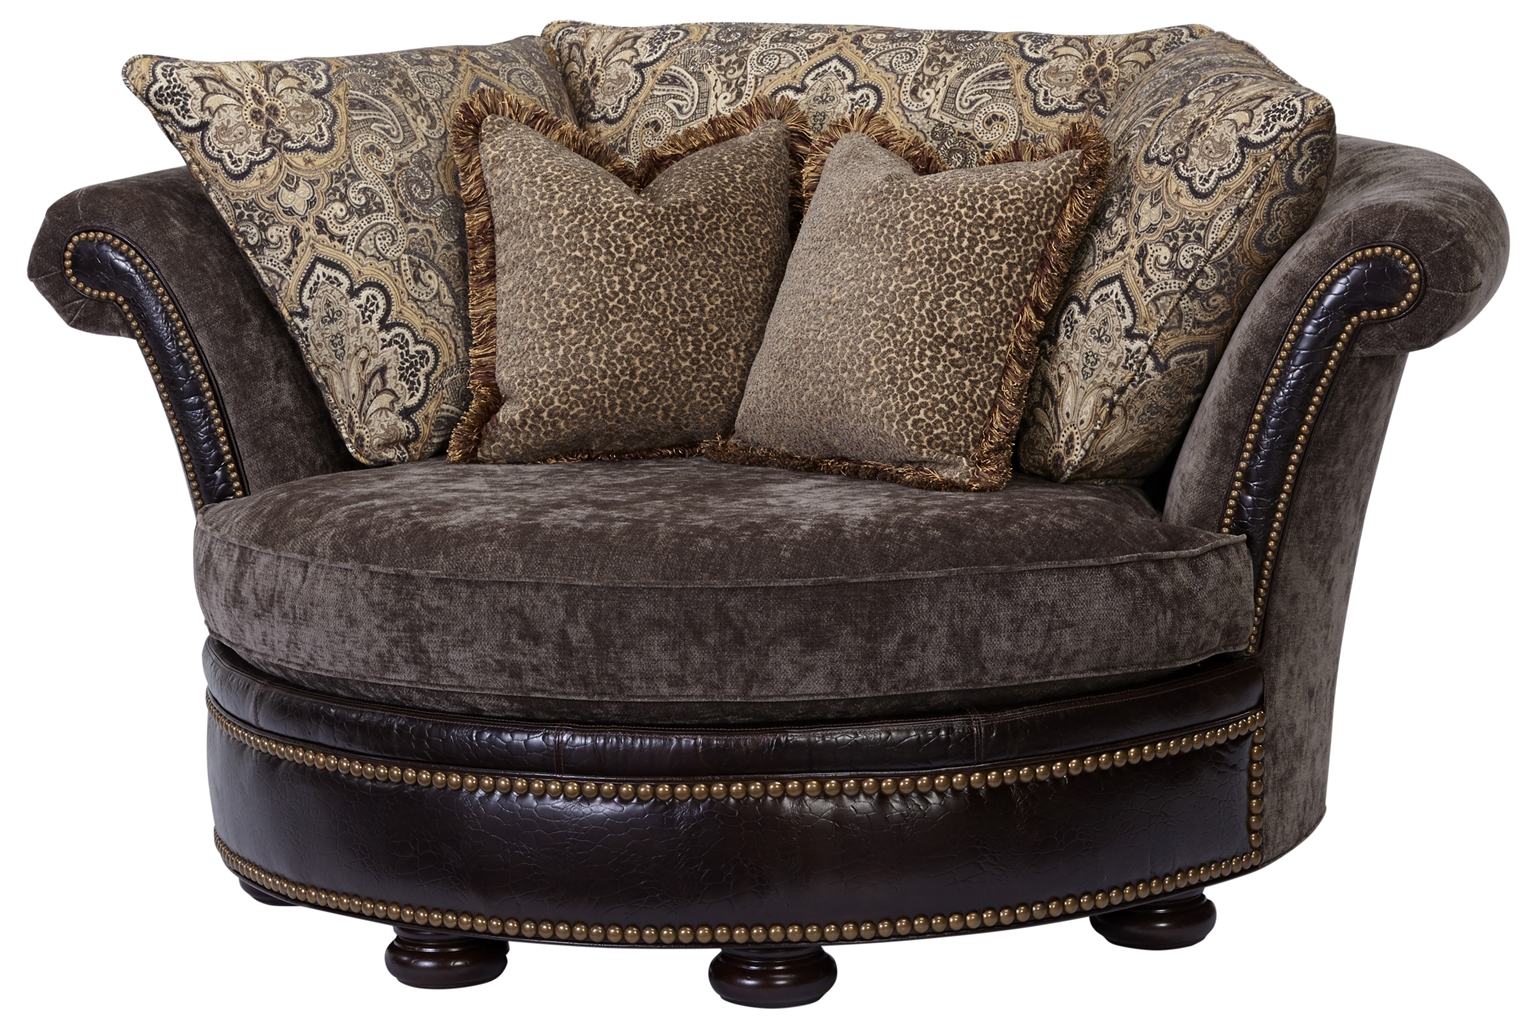 Luxury Leather u0026 Upholstered Furniture Round chaise lounge 2254  sc 1 st  Bernadette Livingston : circular chaise lounge - Sectionals, Sofas & Couches